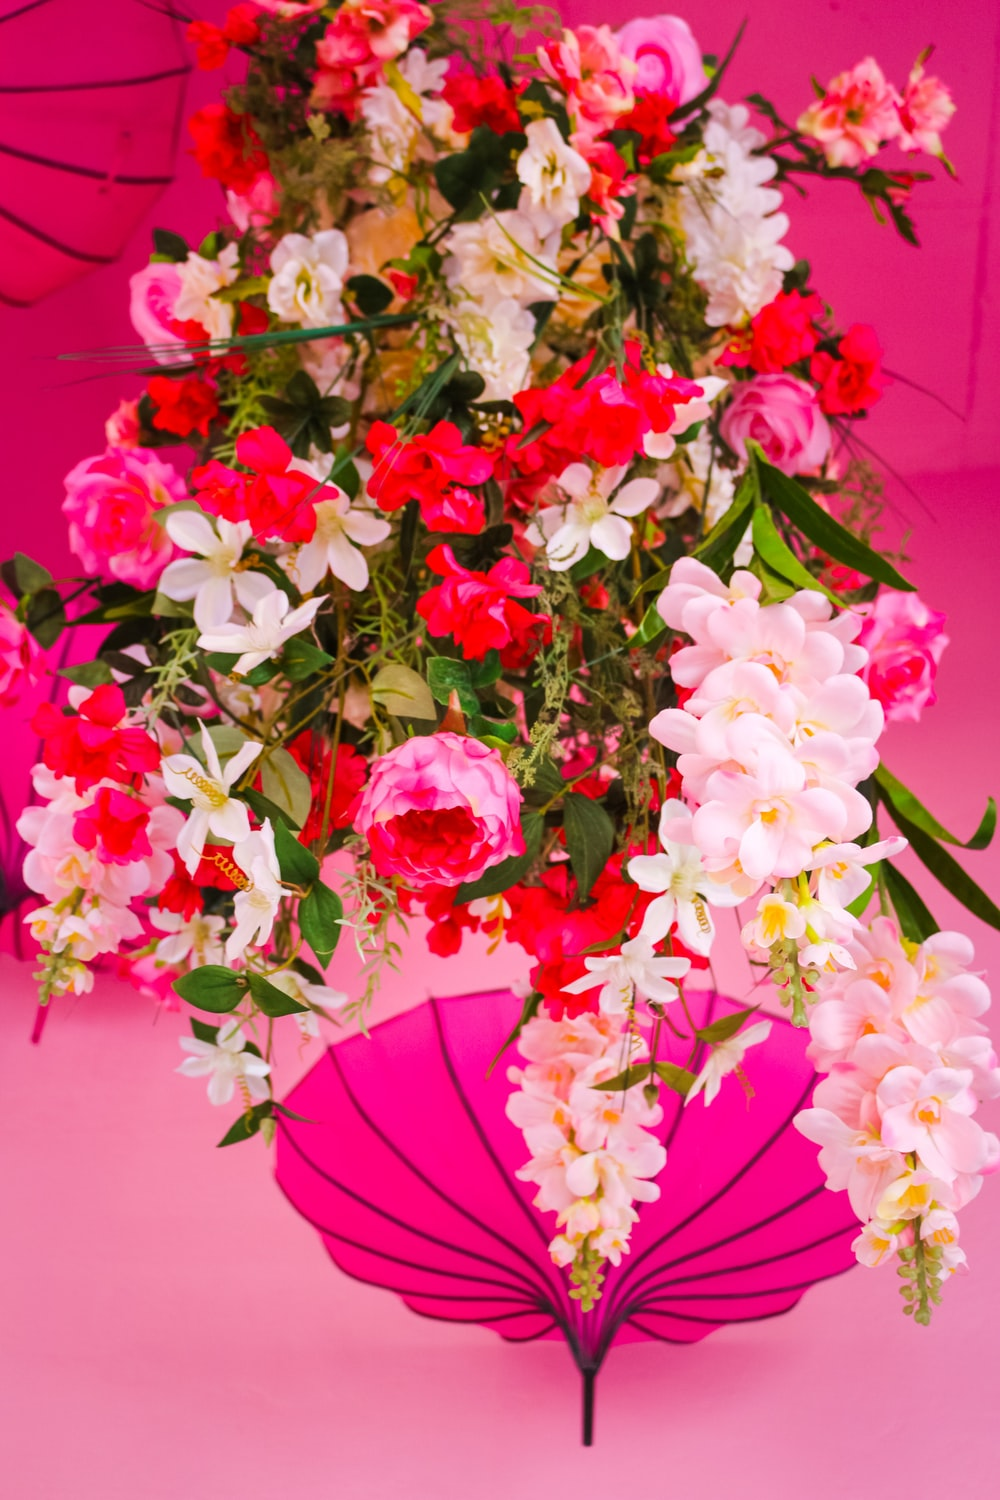 pink and white flowers on red table